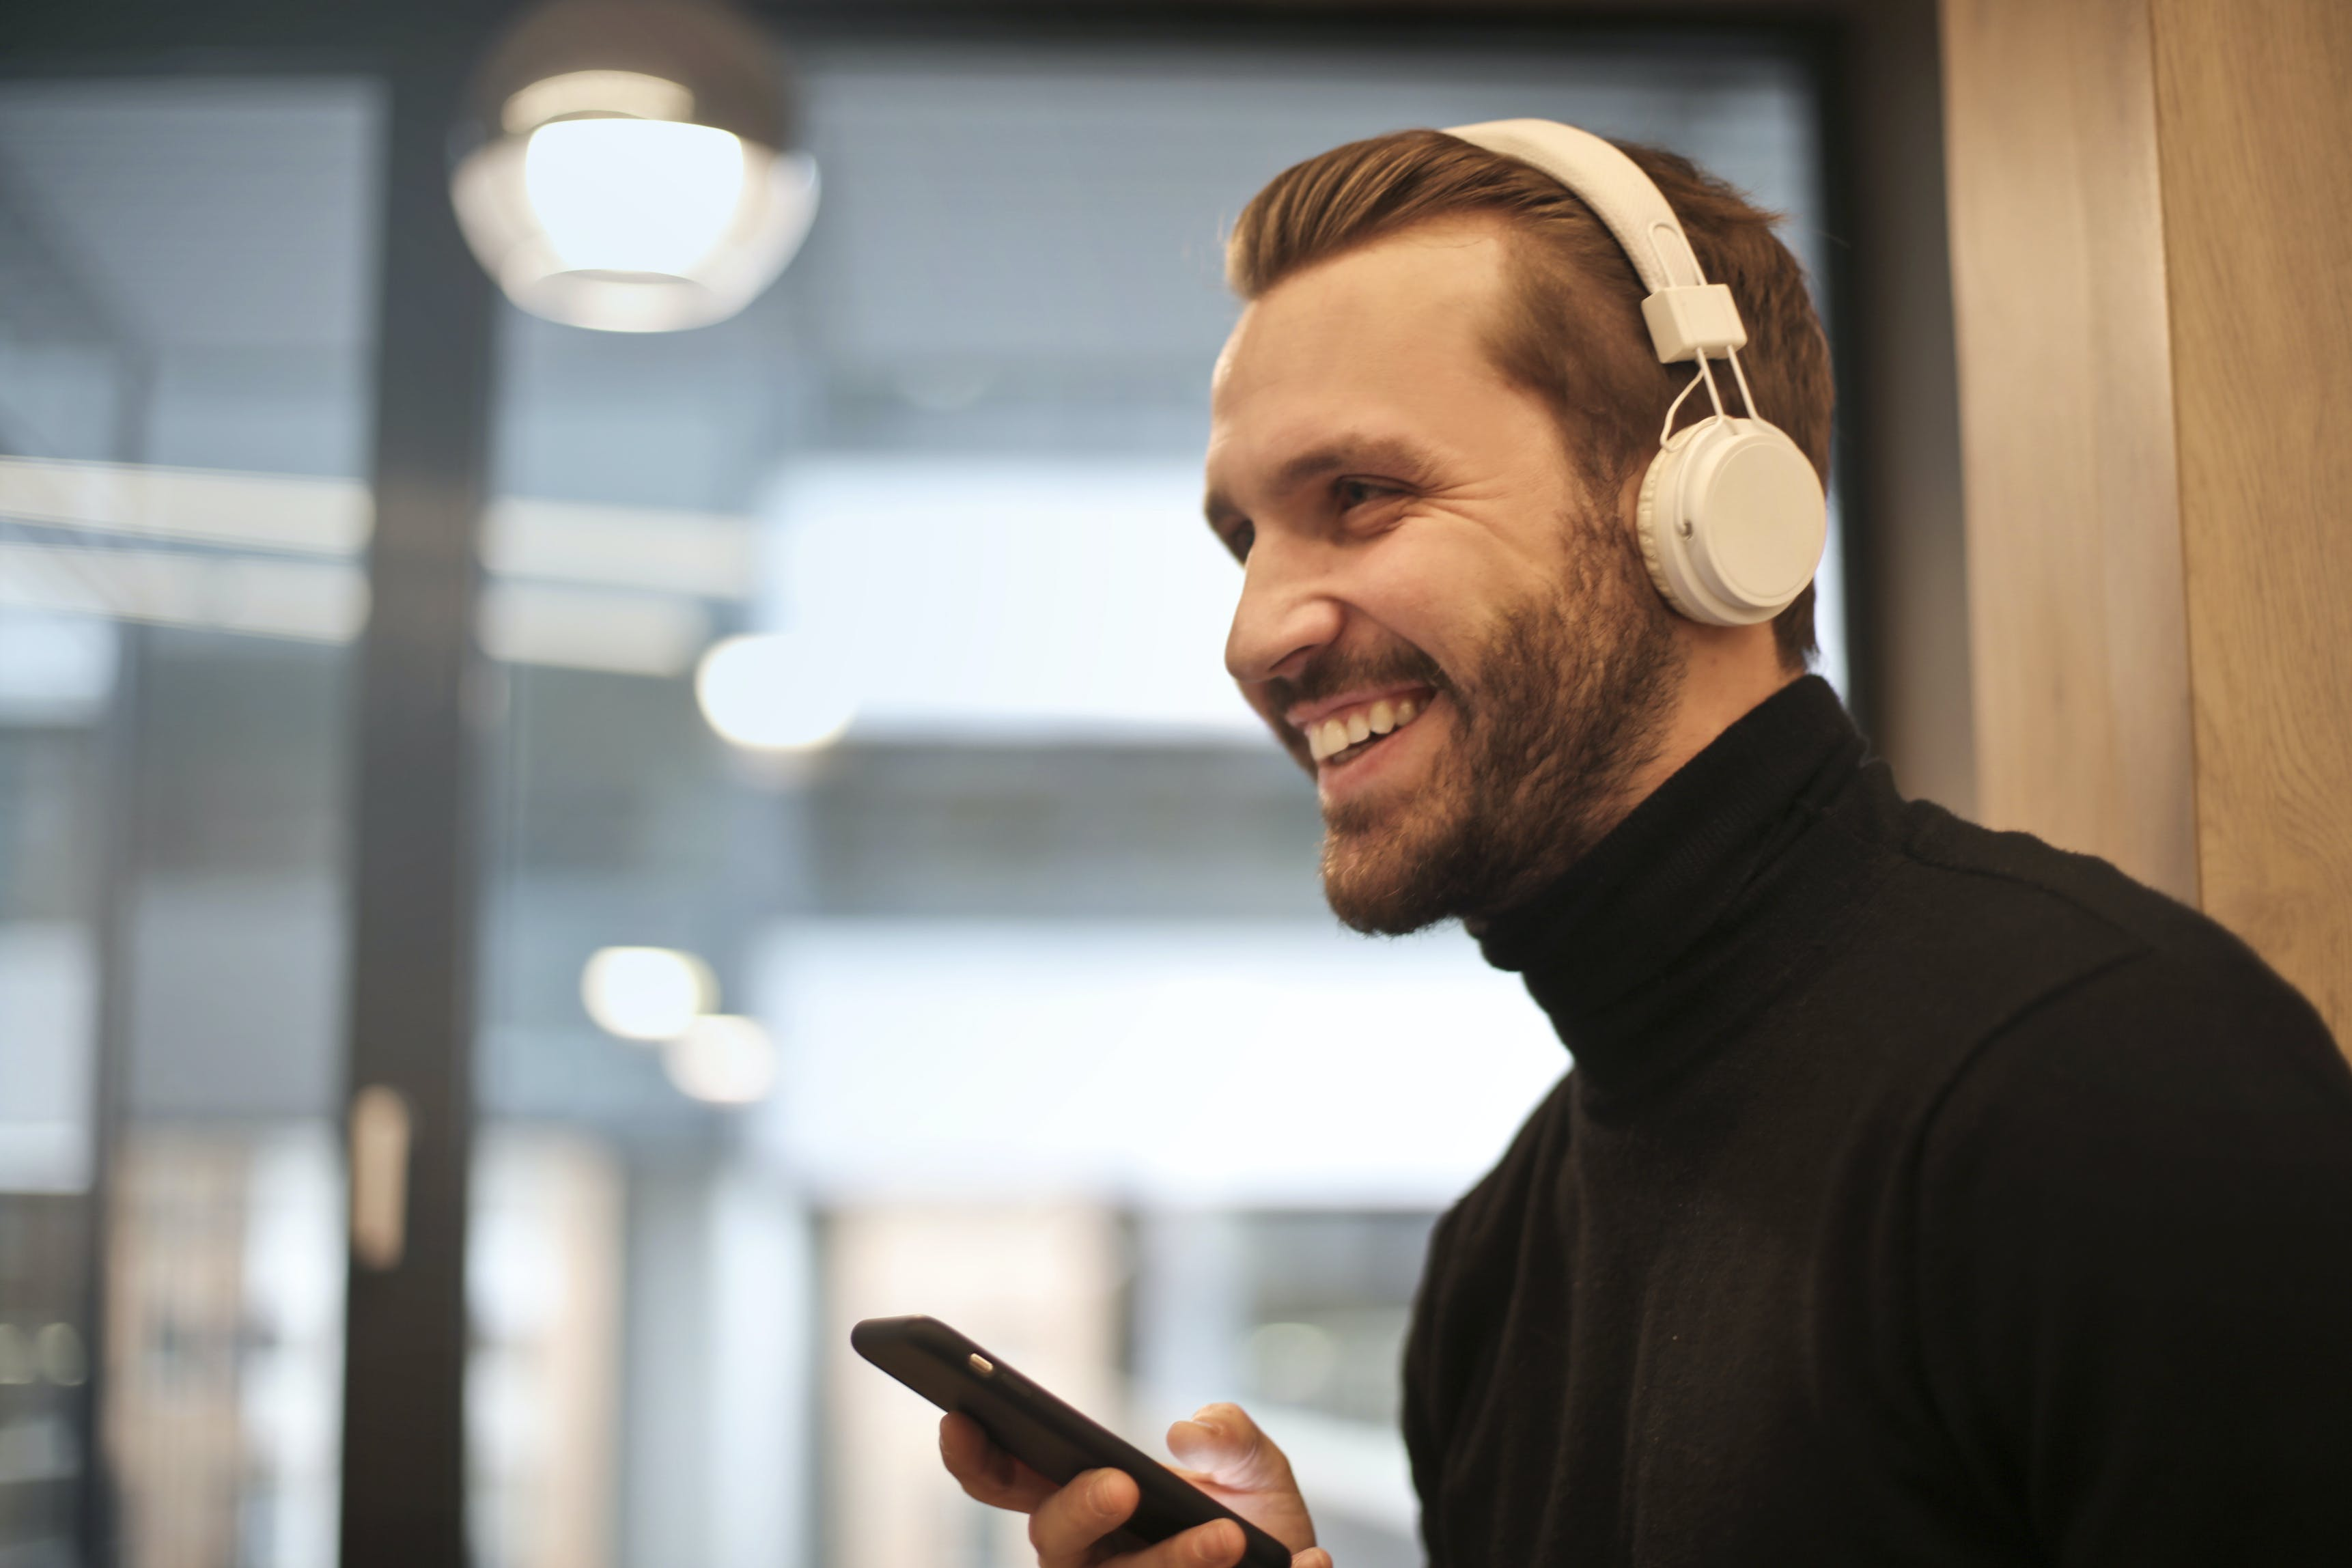 Man Wearing White Headphones Listening to Music